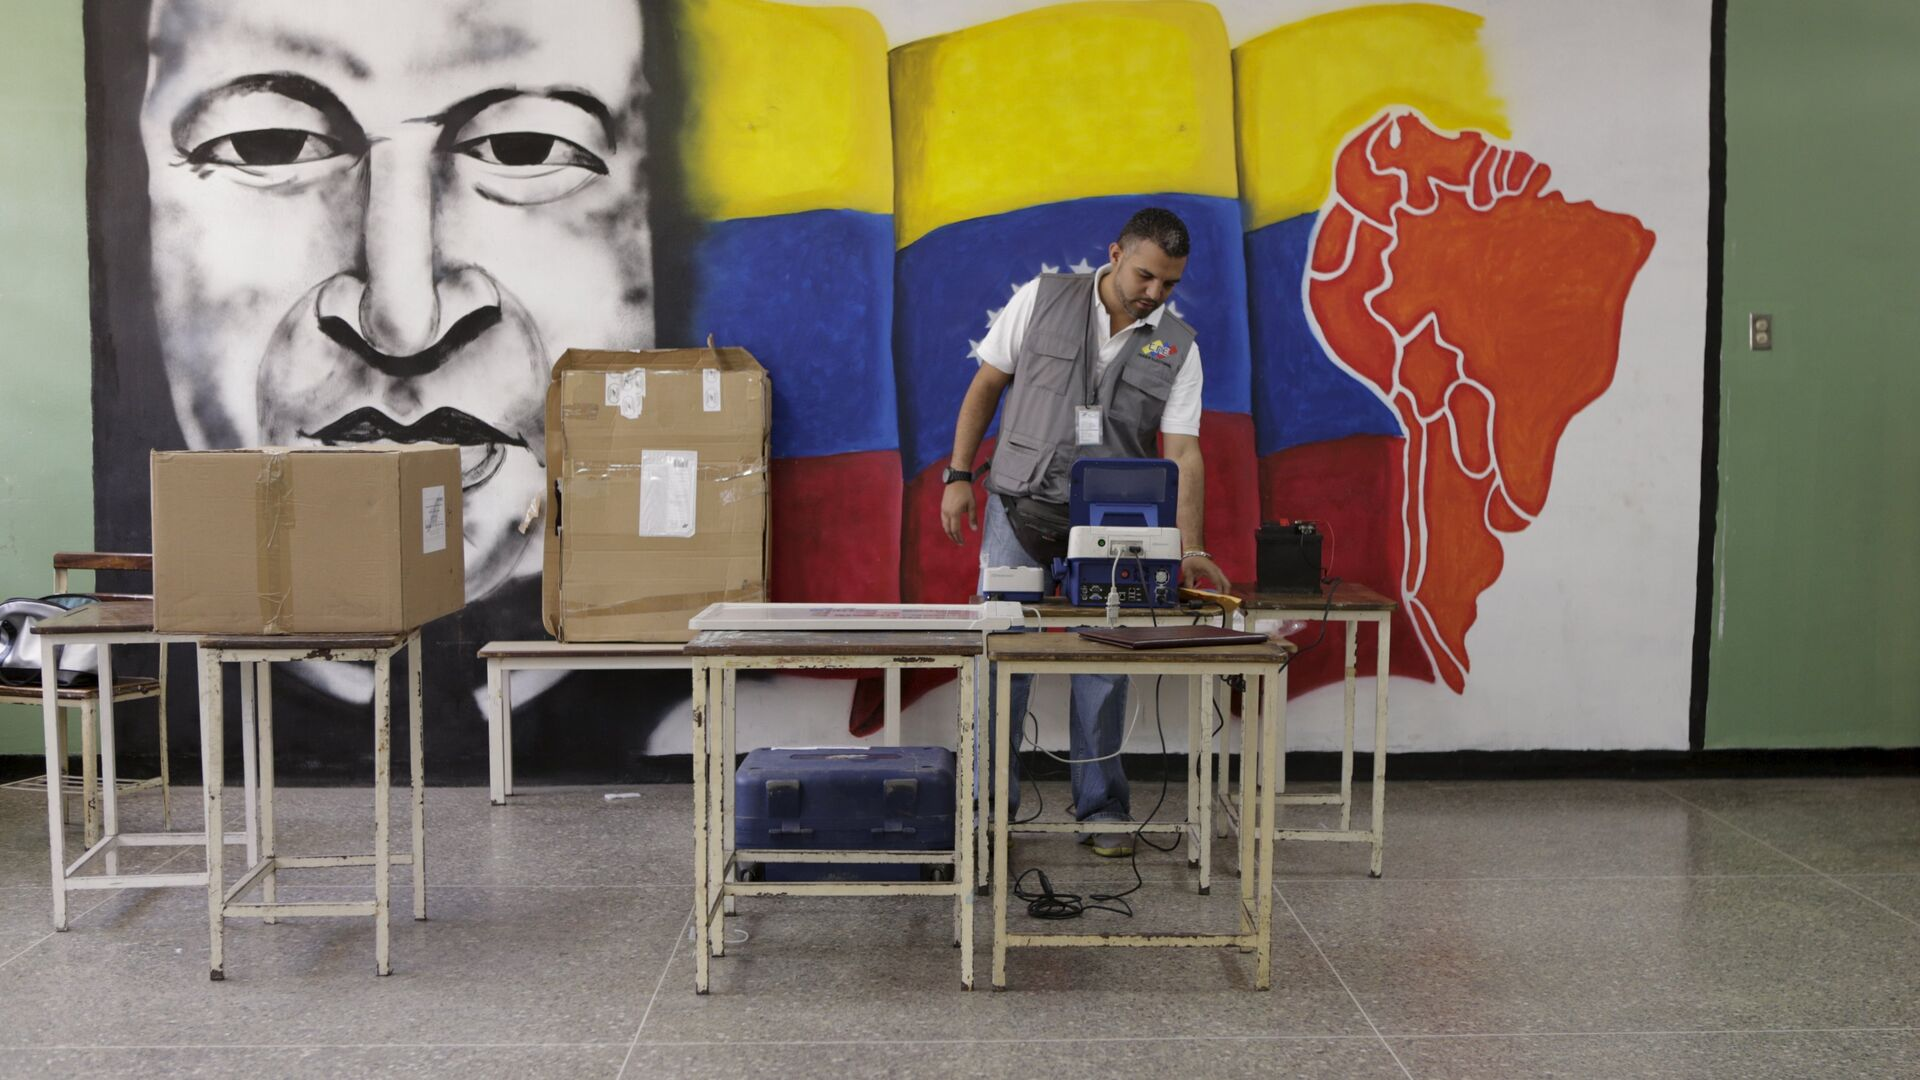 A worker of the National Electoral Council (CNE) configures a voting machine in front of a mural depicting Venezuela's late President Hugo Chavez at a school in Caracas, December 4, 2015. Venezuela will hold parliamentary elections on December 6. - Sputnik Mundo, 1920, 11.05.2021